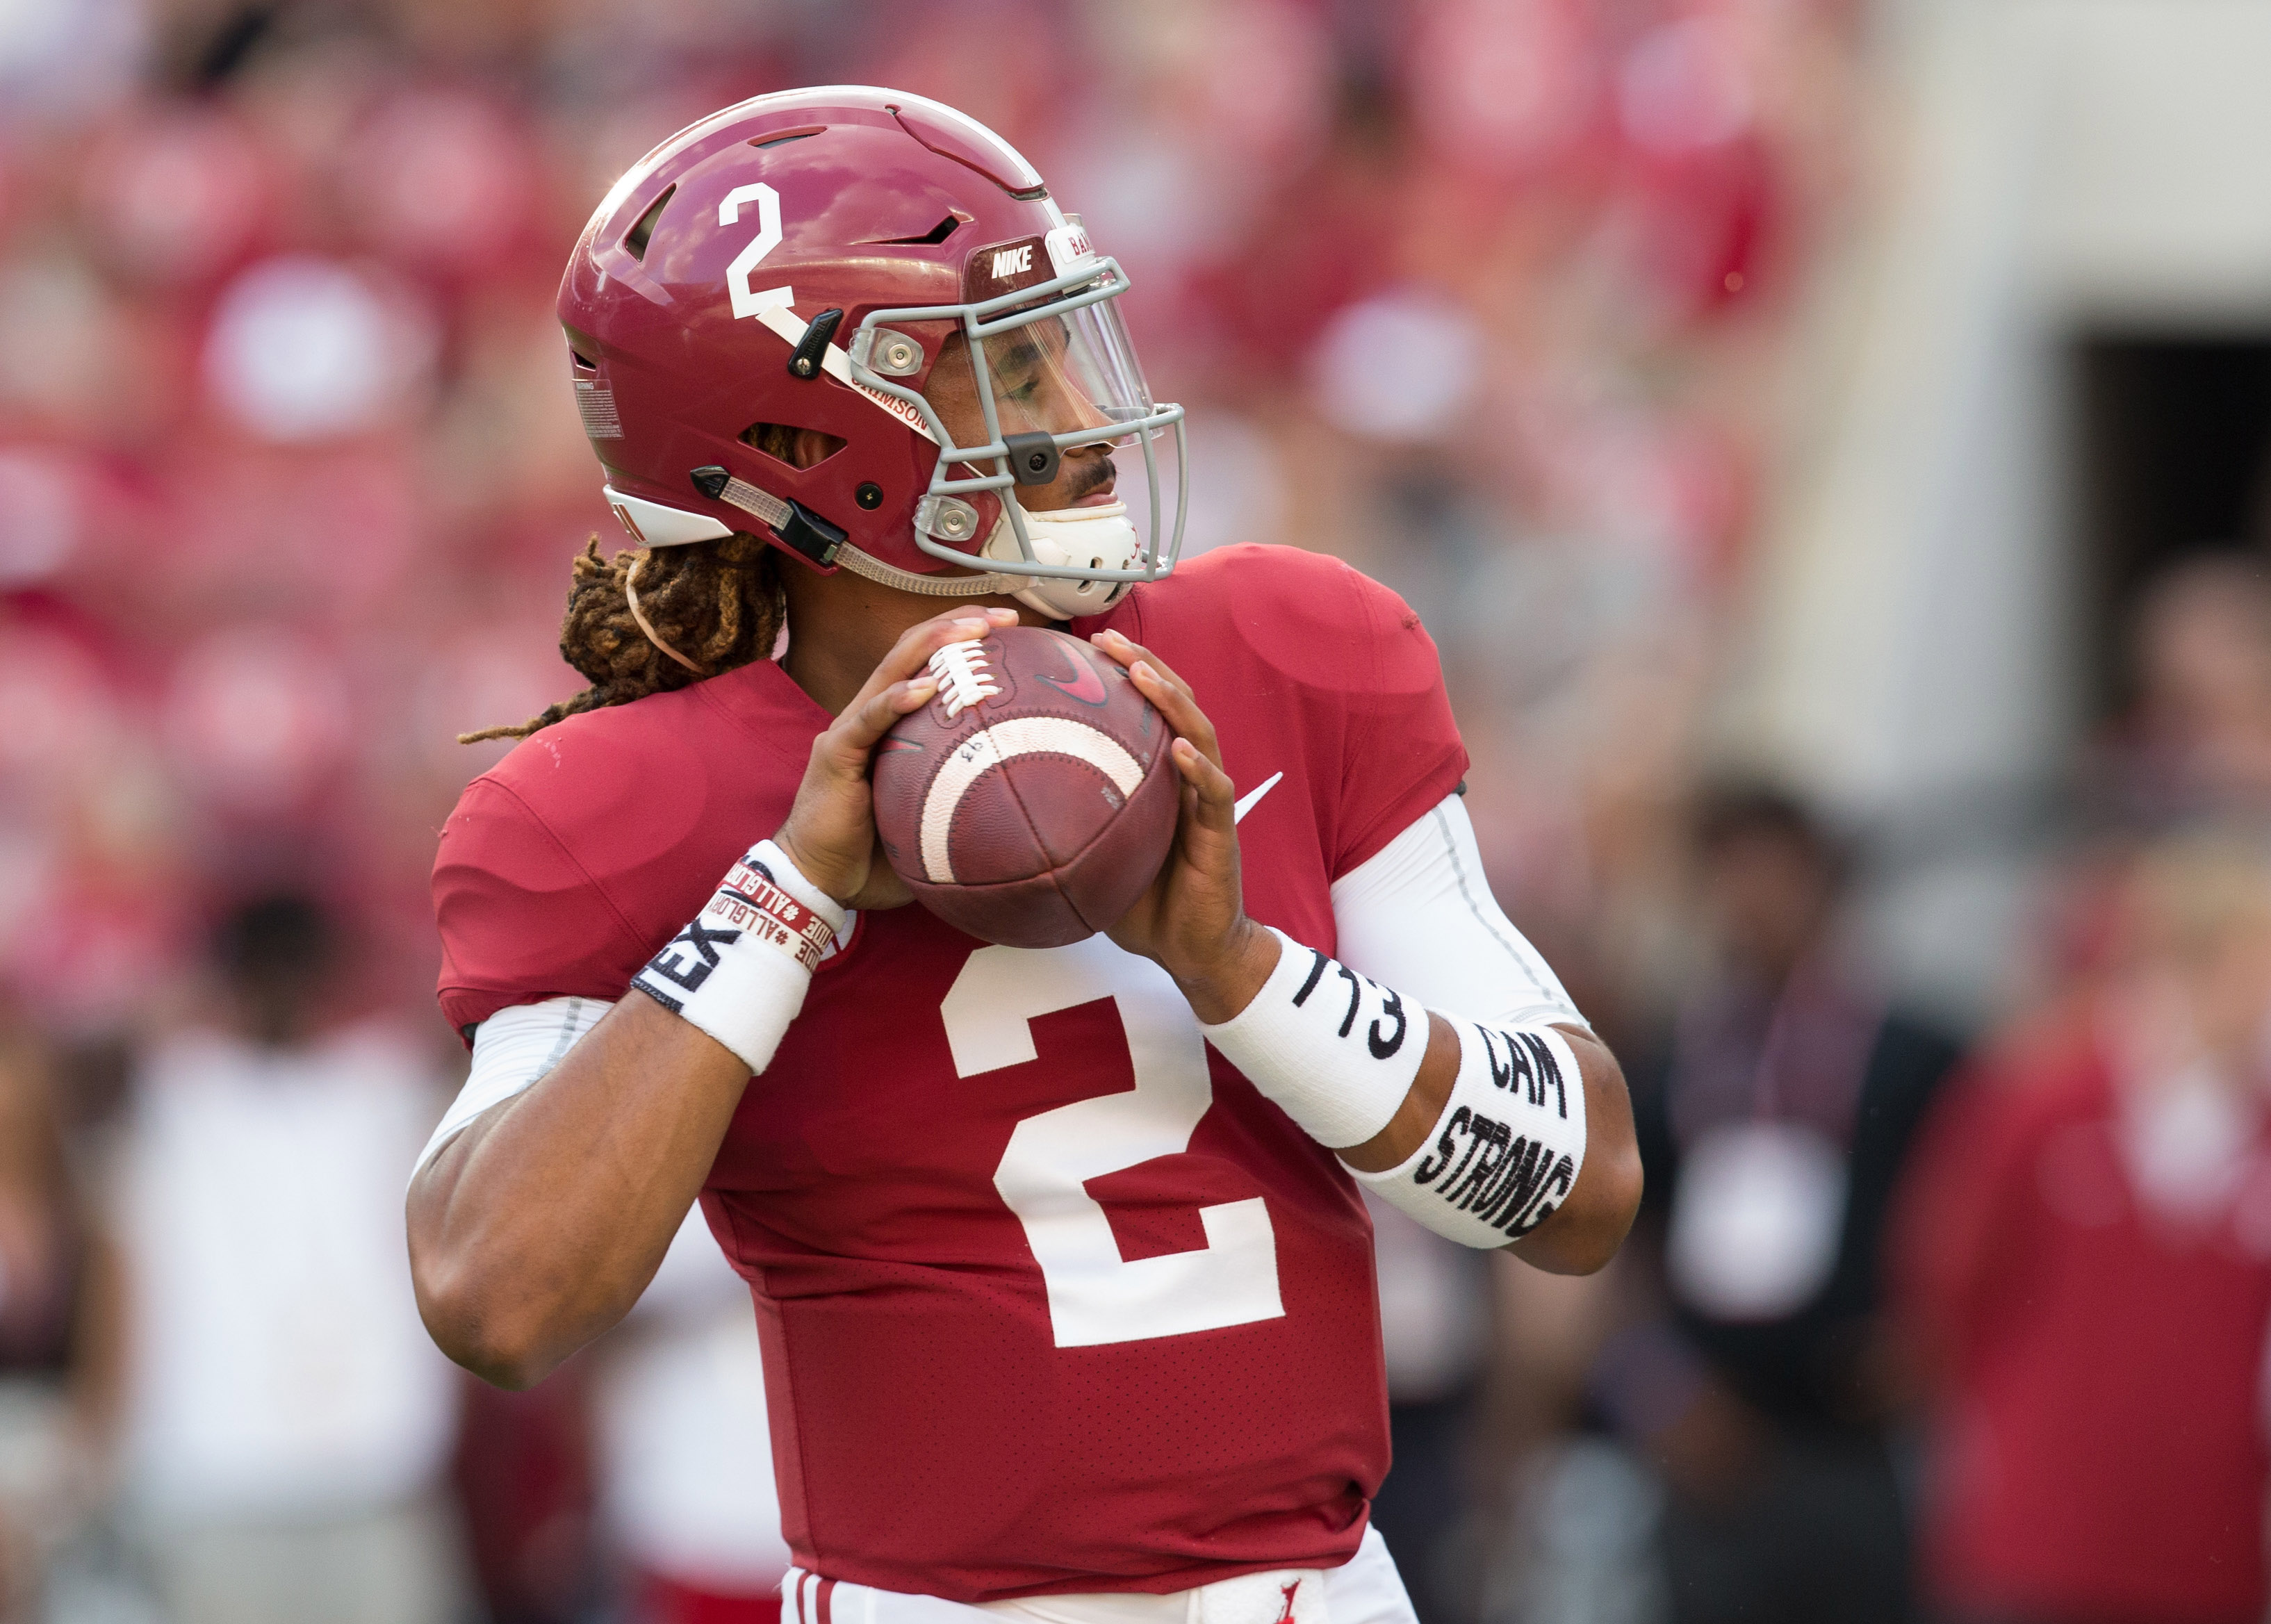 Just like last year, SEC appears to be out of Heisman ...